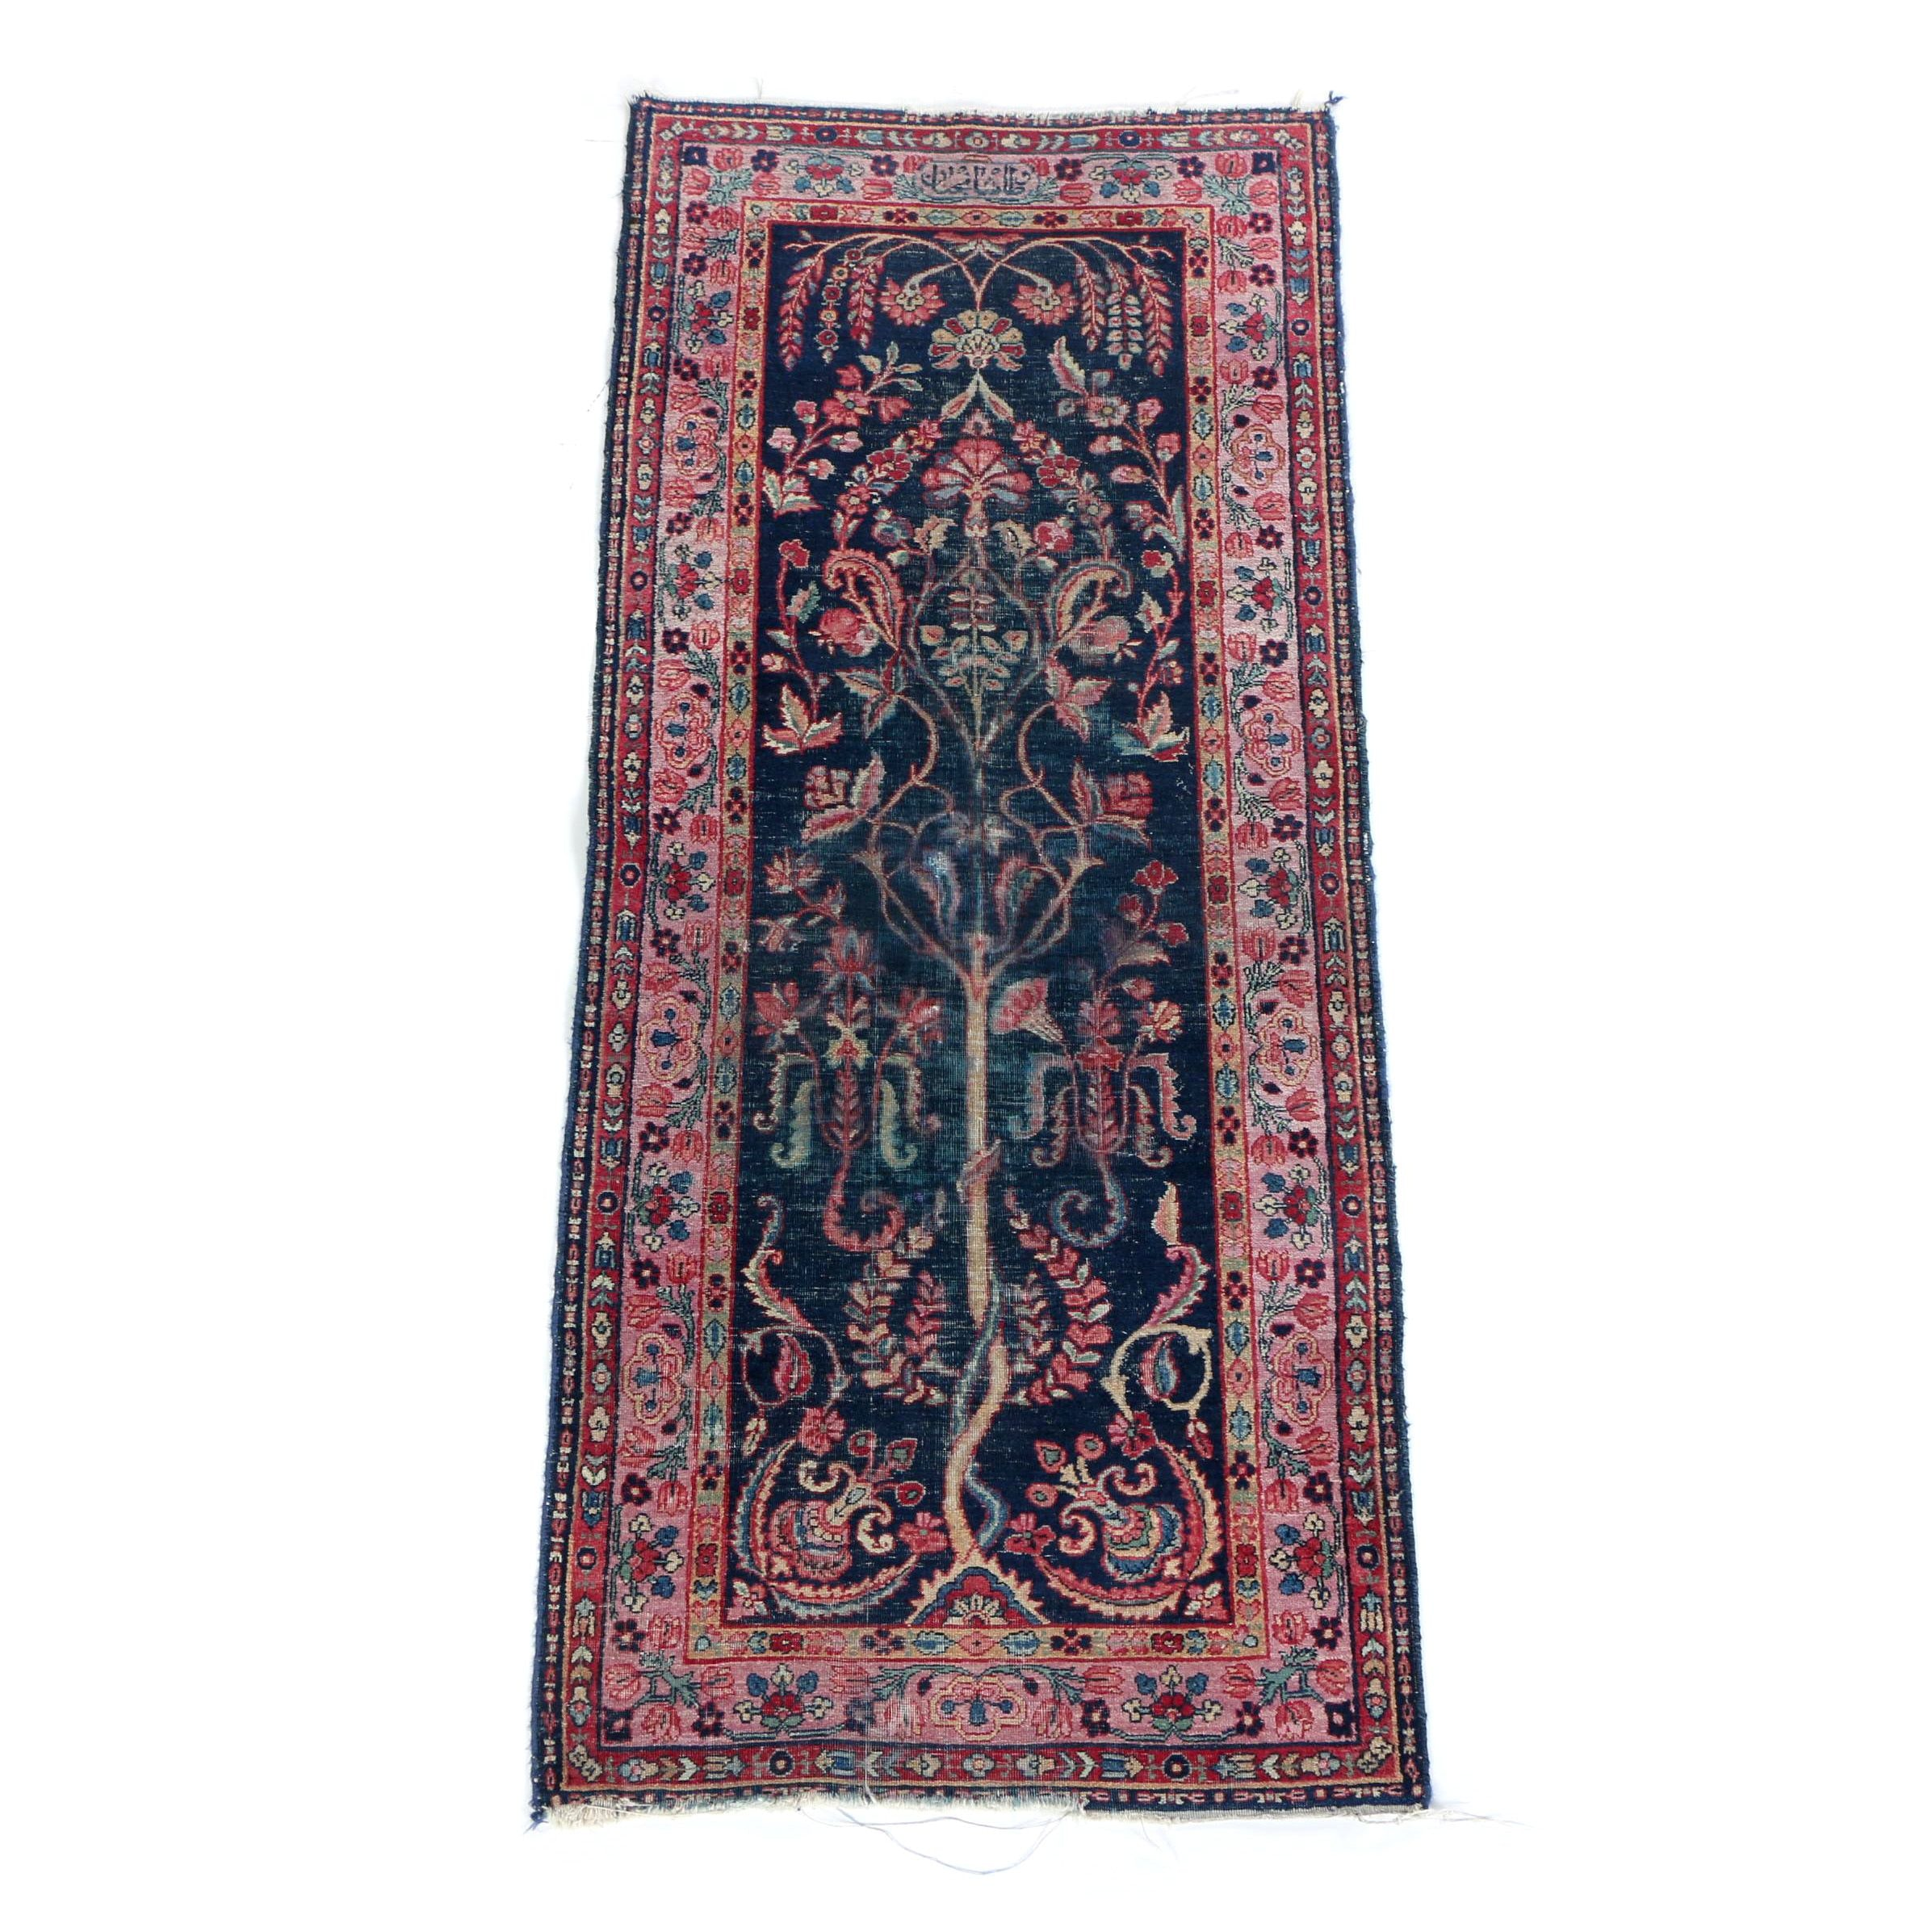 Hand-Knotted Vintage Signed Persian Tree of Life Area Rug